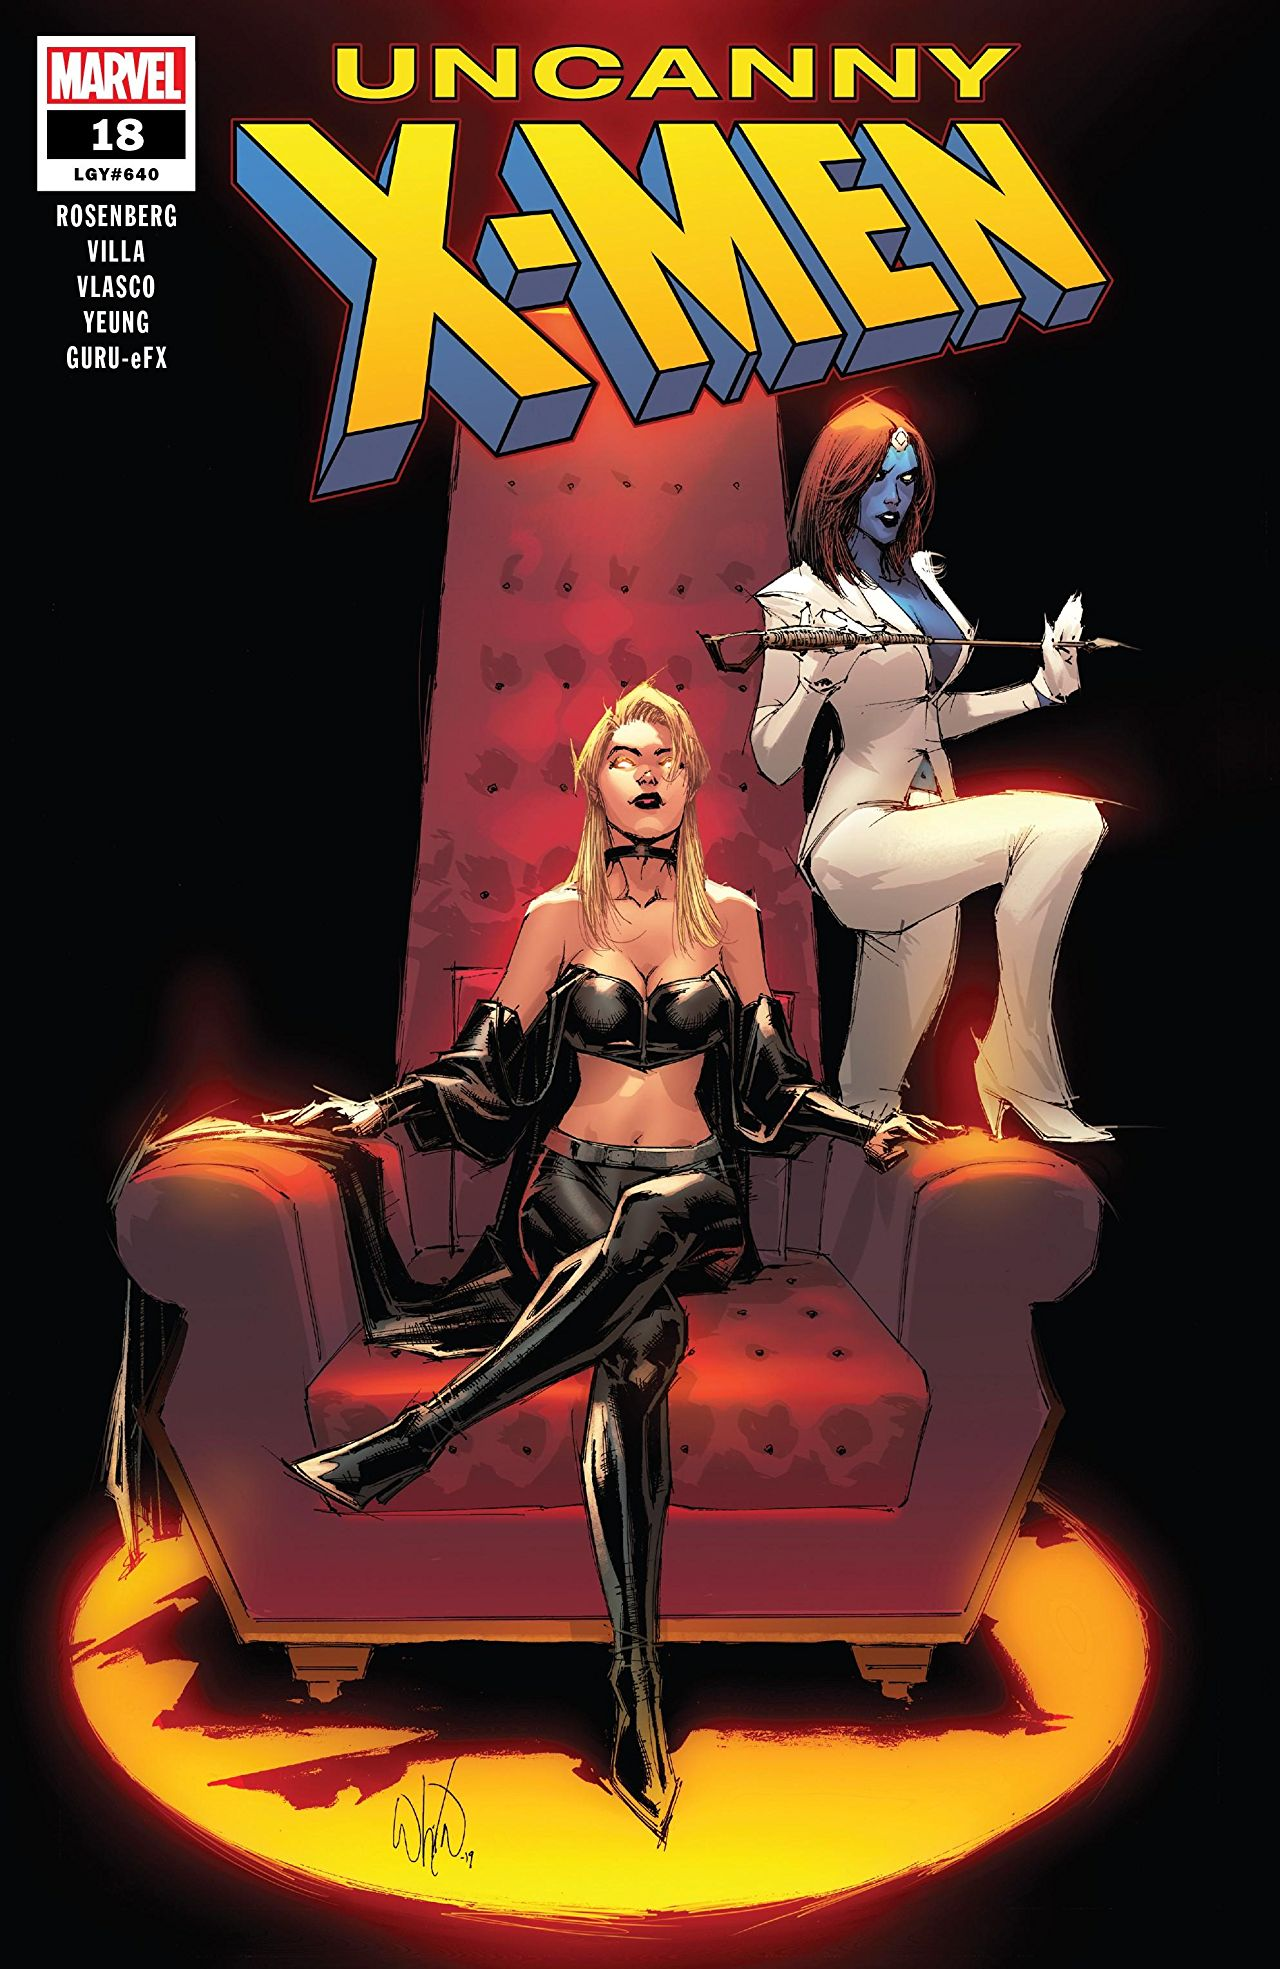 Uncanny X-Men #18 review: Too much to take in